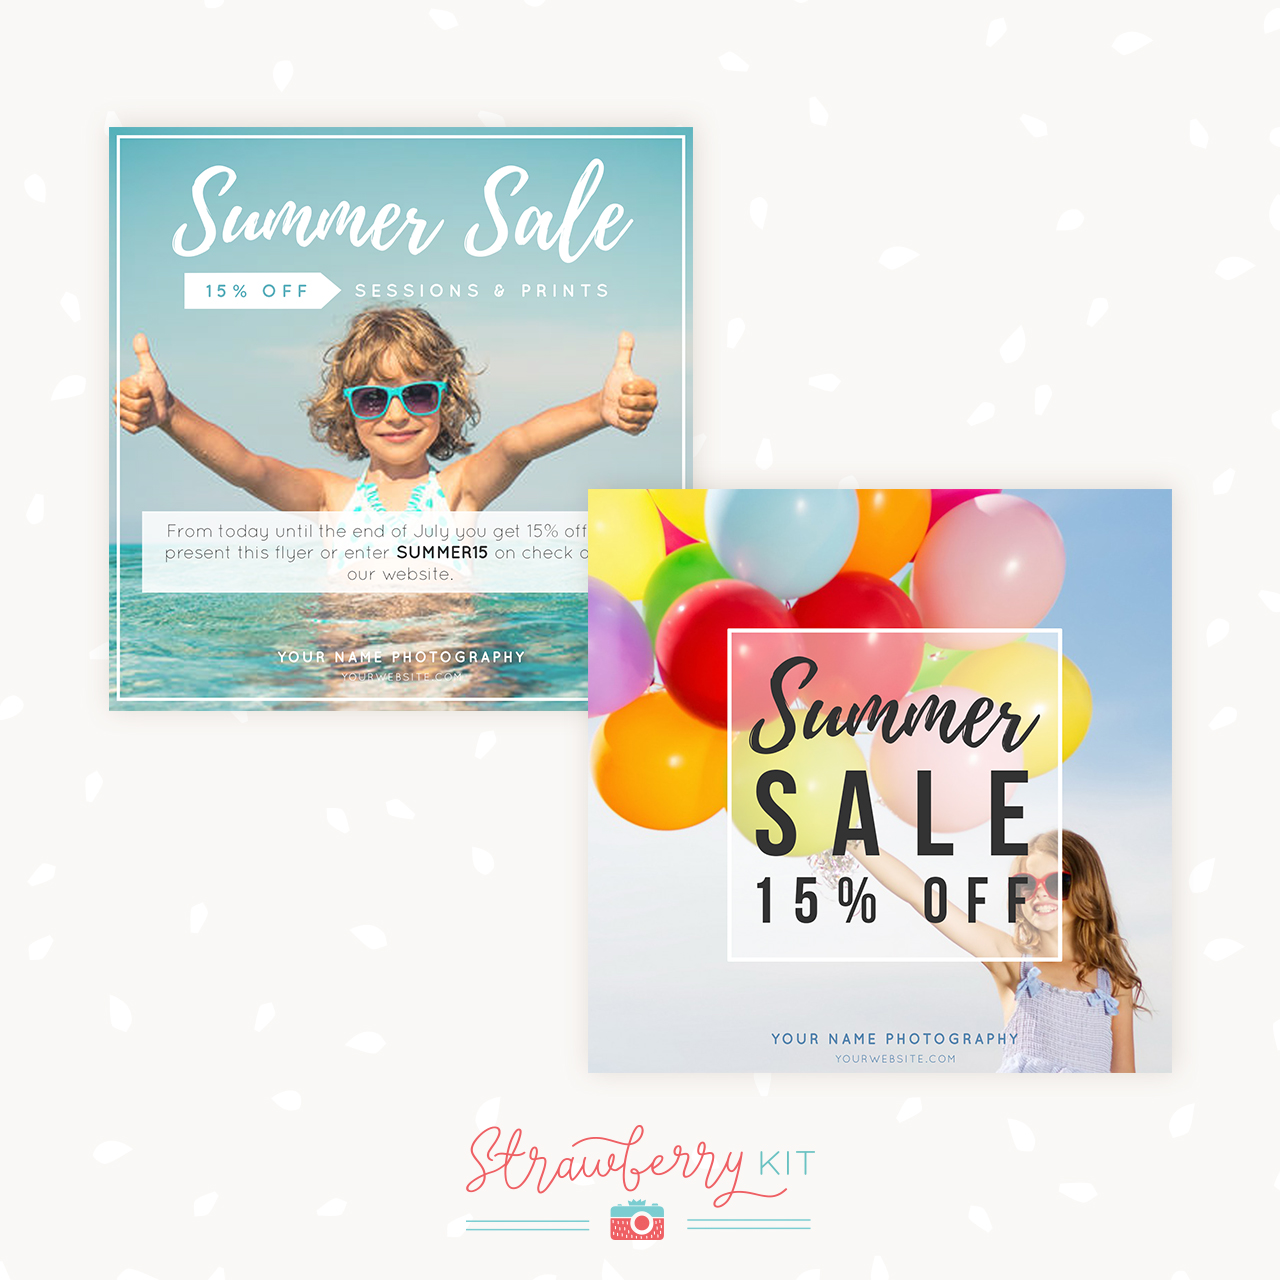 Summer sale marketing template for photographers